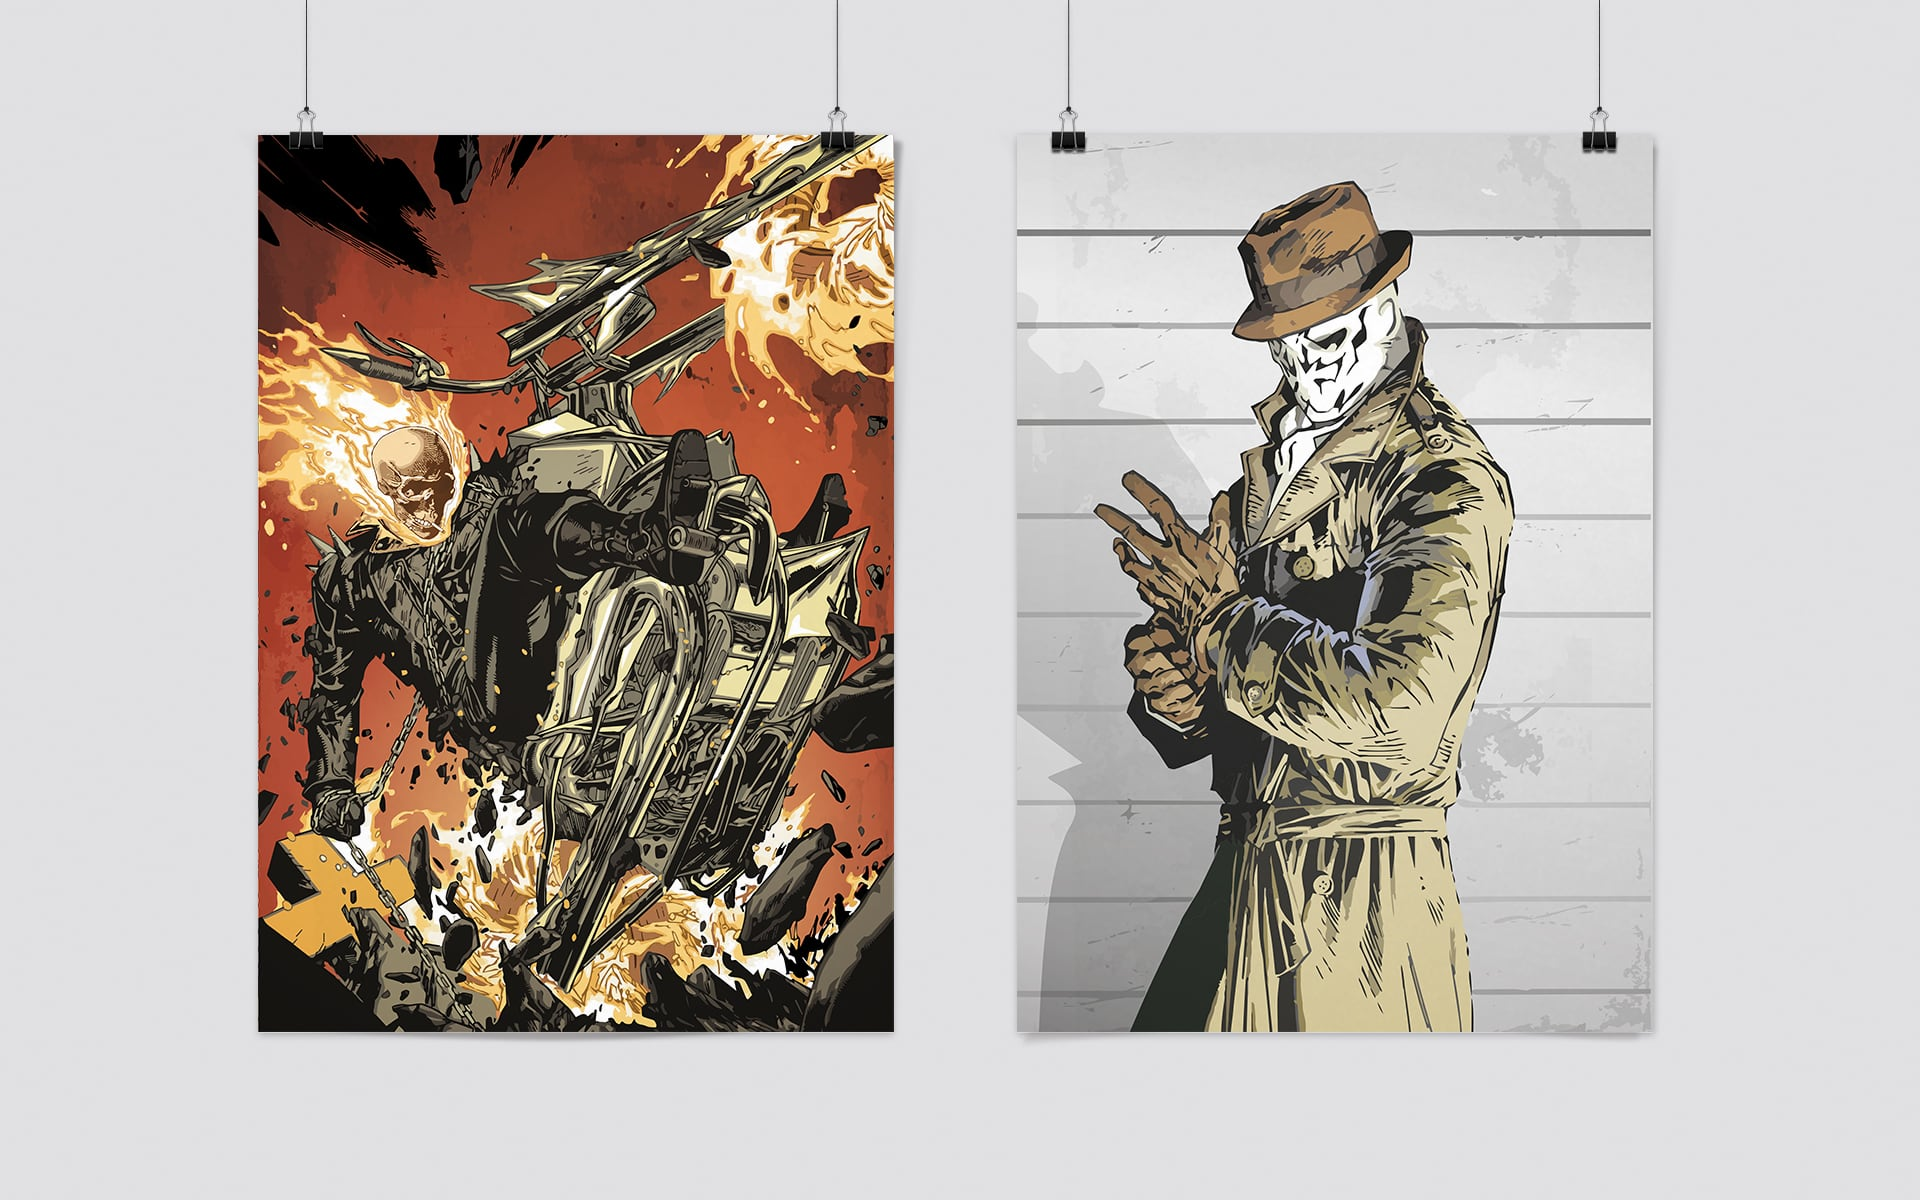 Ghostrider und Rorschach Illustration